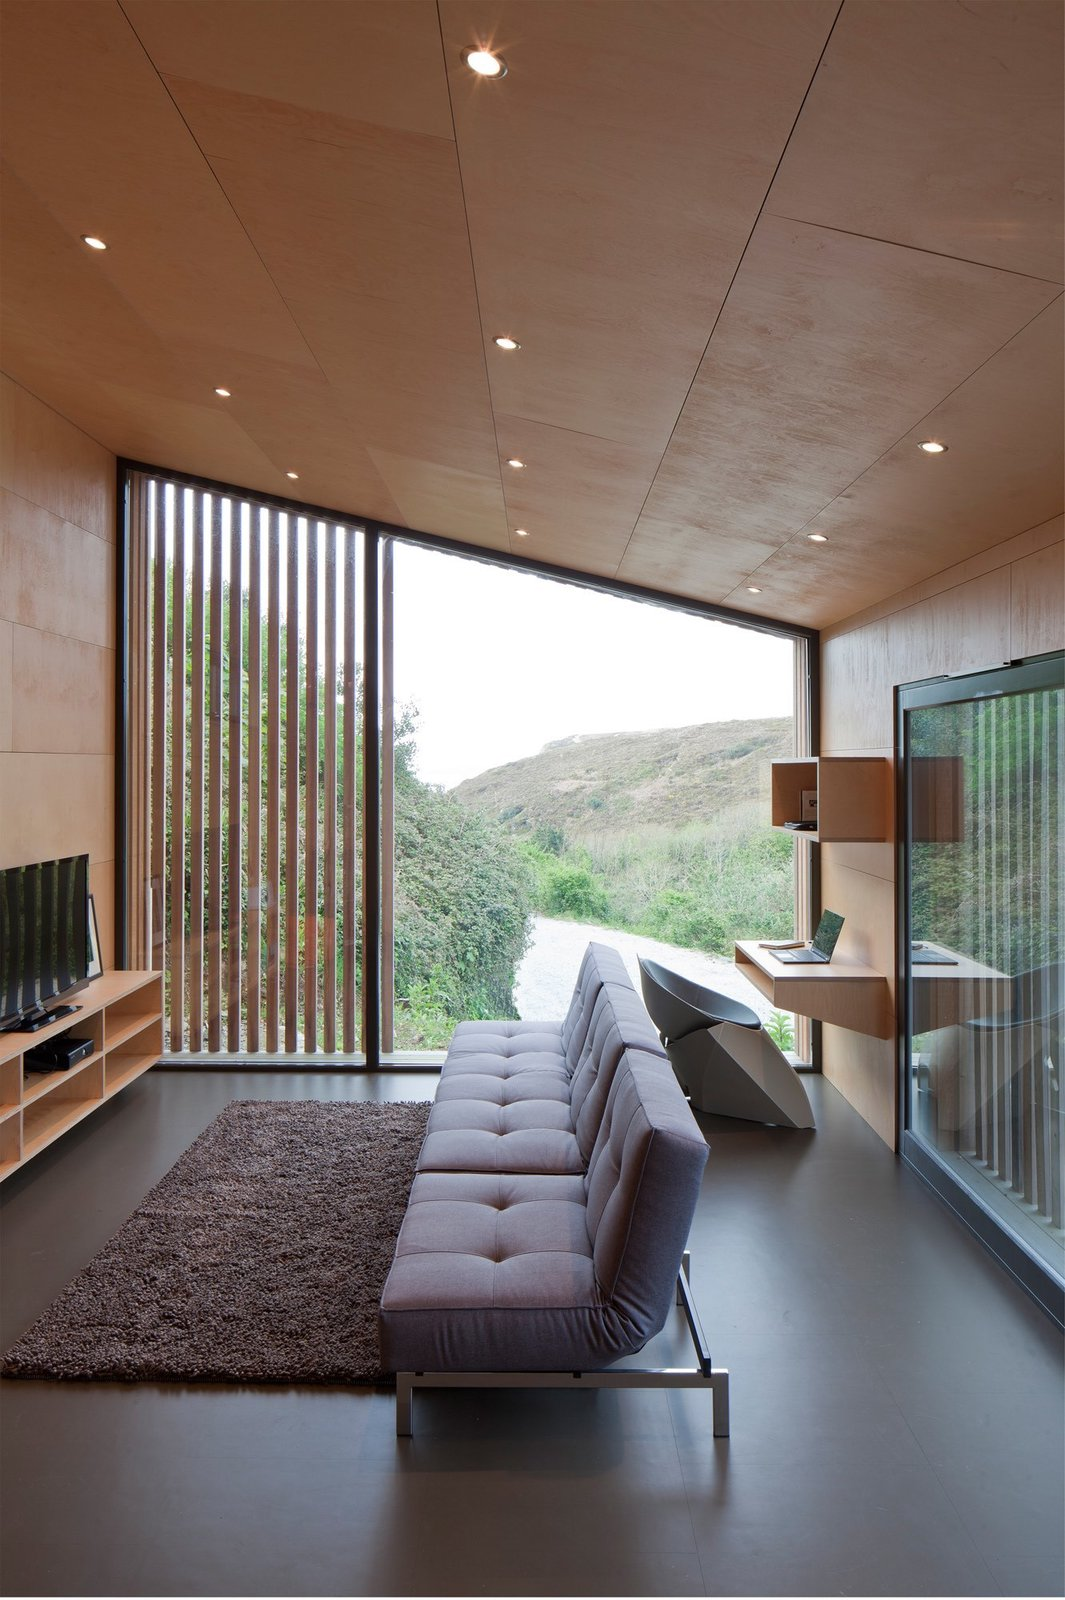 Living Room, Recessed Lighting, Sofa, Rug Floor, Desk, Chair, Shelves, and Media Cabinet  Best Photos from This Company Can Design, Build, and Deliver a Sustainable Prefab in Just 12 Weeks